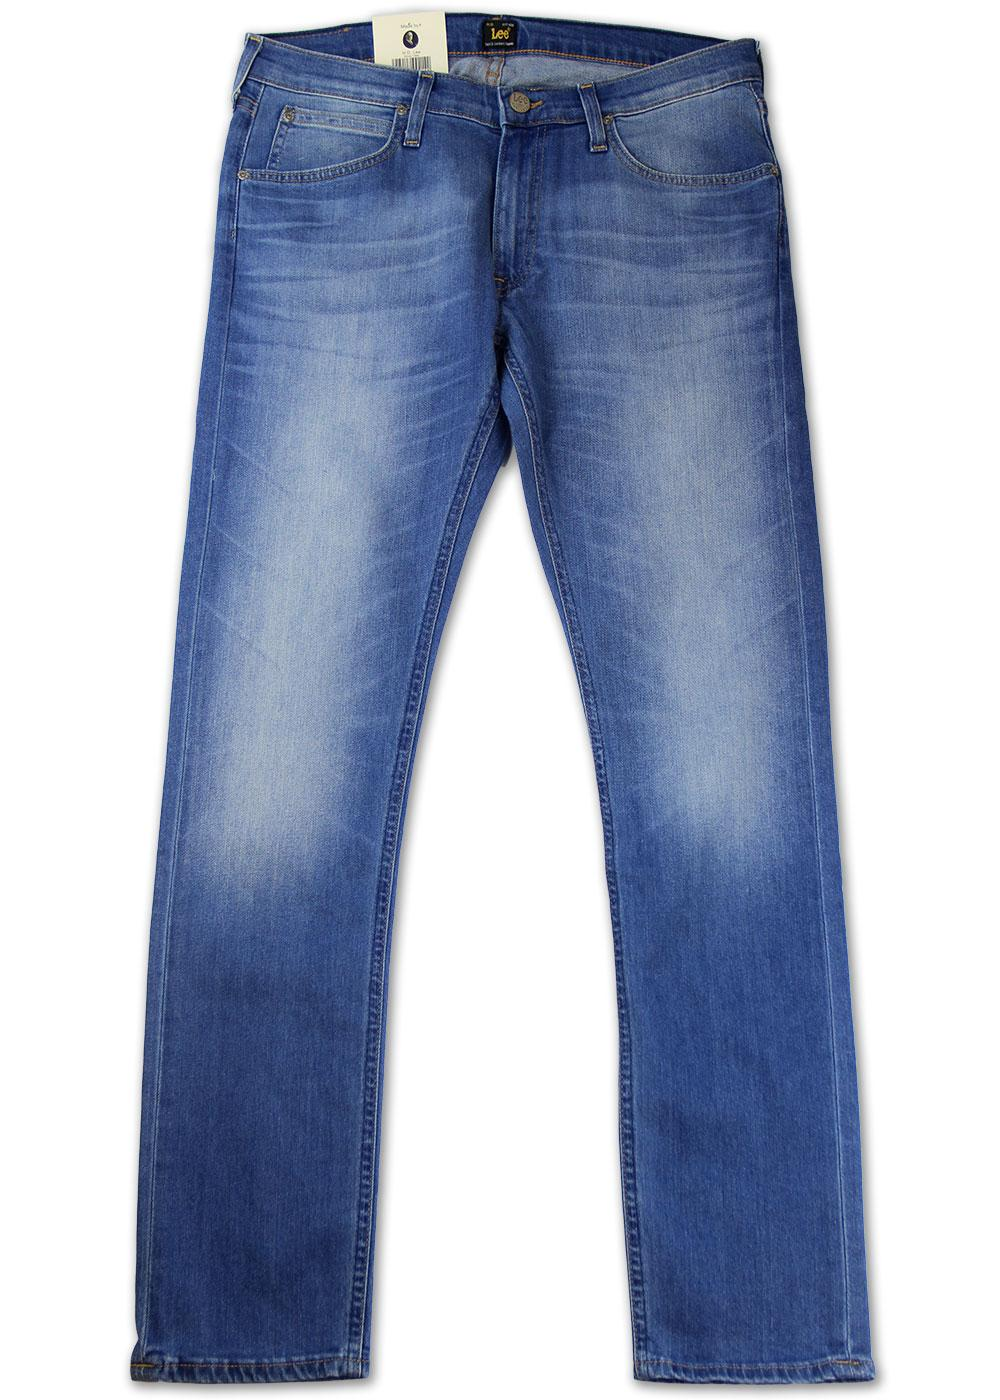 Luke LEE Jeans Retro Slim Tapered Denim Jeans (BS)